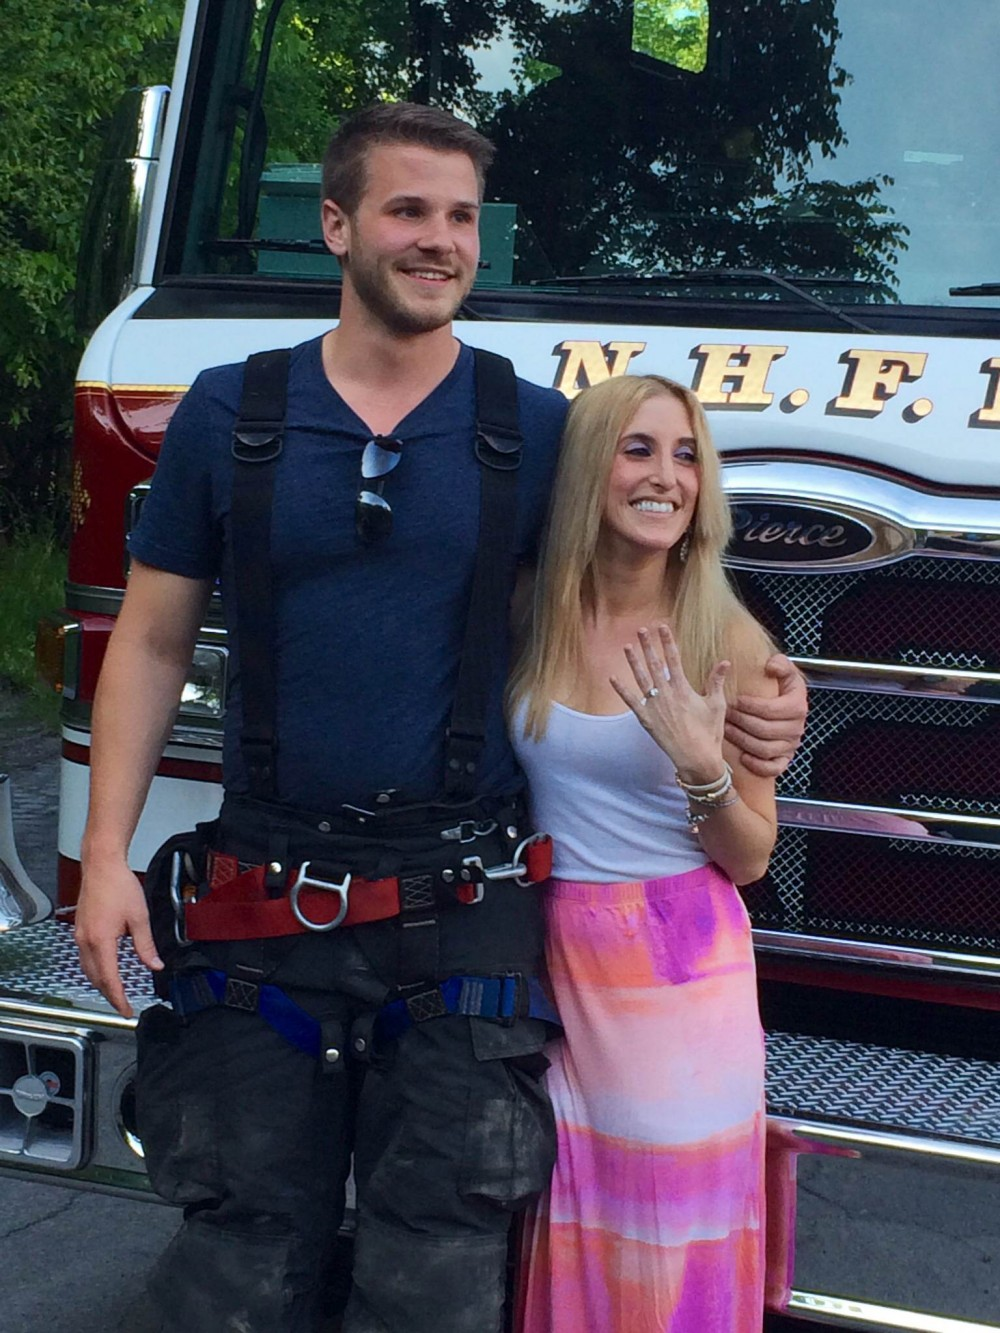 Image 5 of Carly and Brian's Firemen Proposal